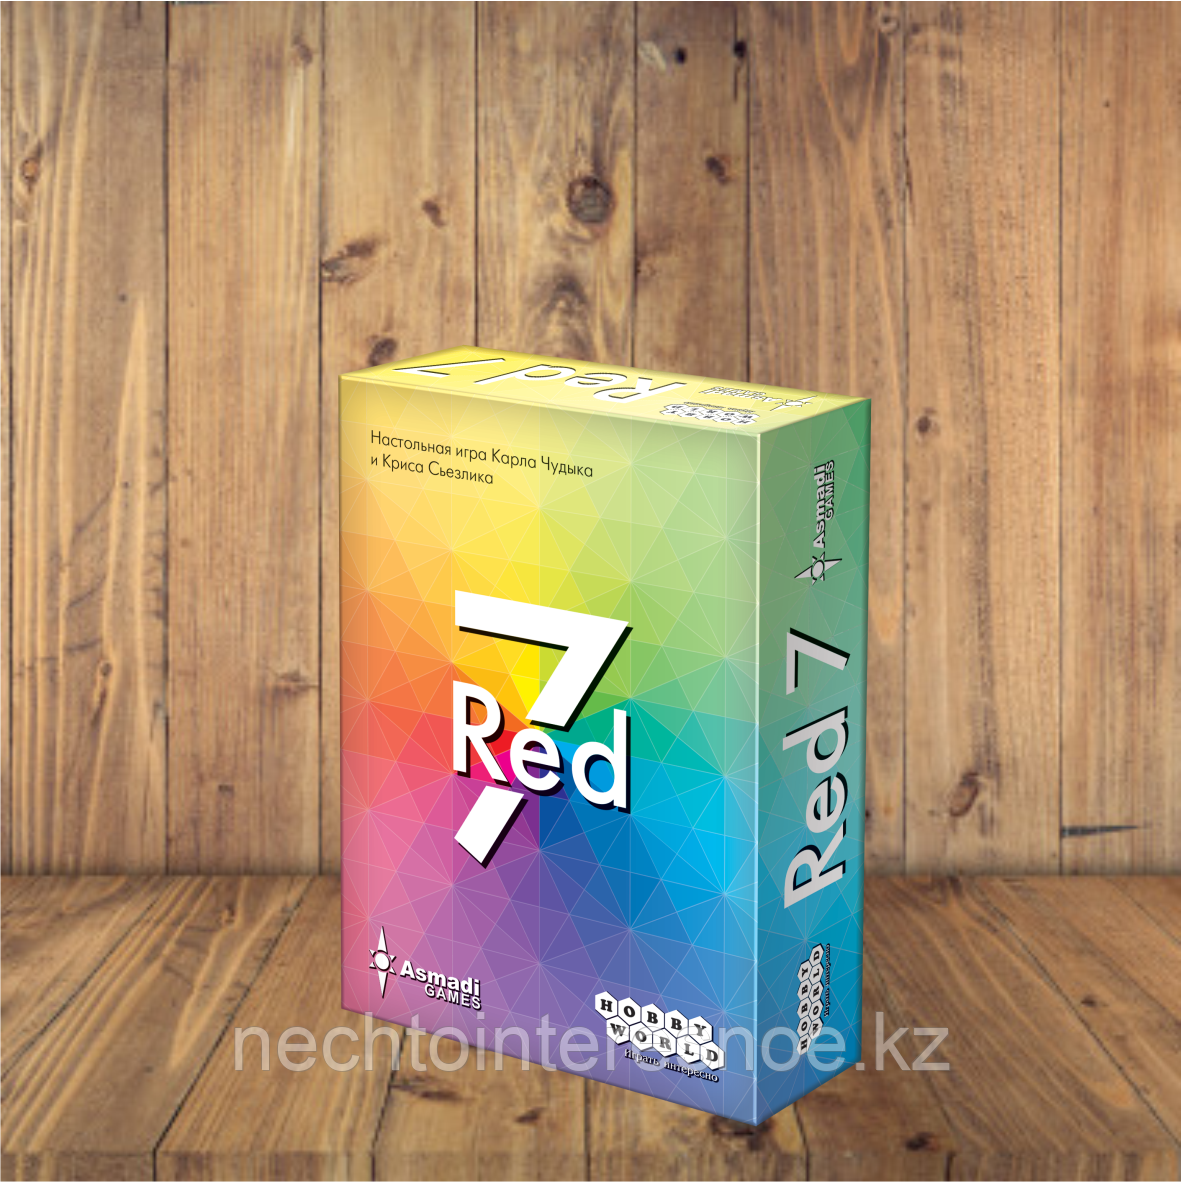 Red 7!